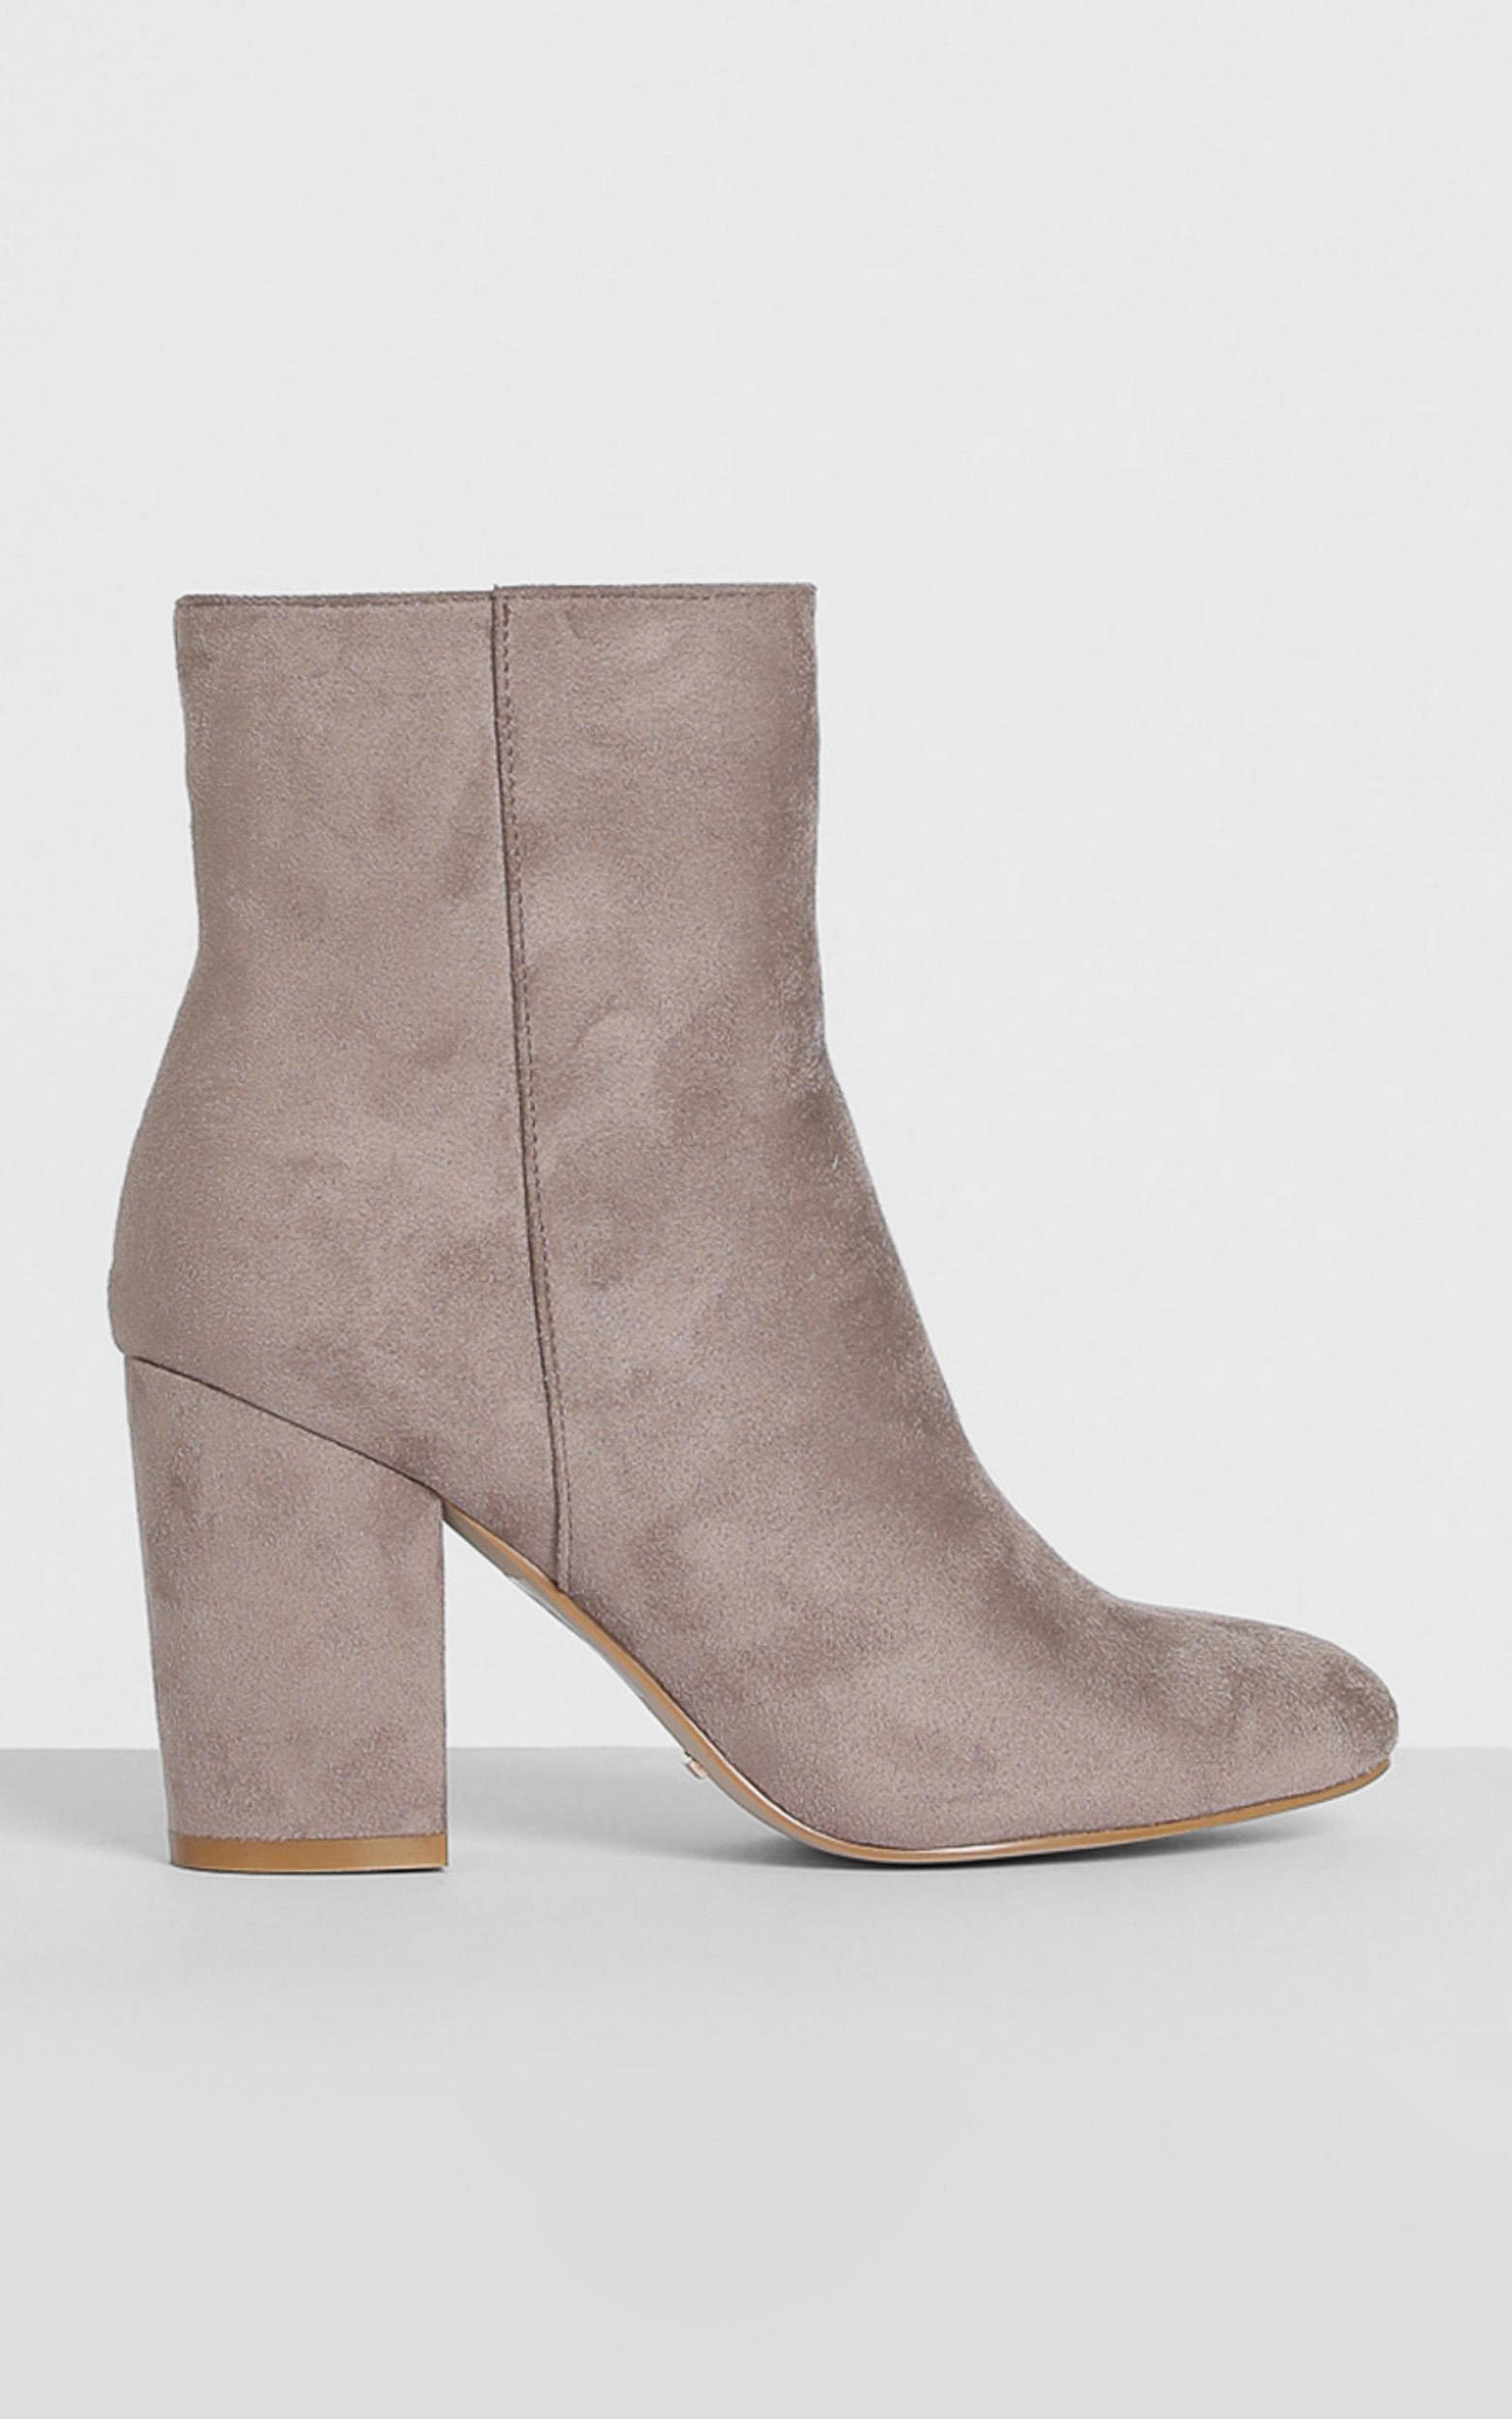 Billini - Darcy Boots in dark taupe micro - 5, Taupe, hi-res image number null